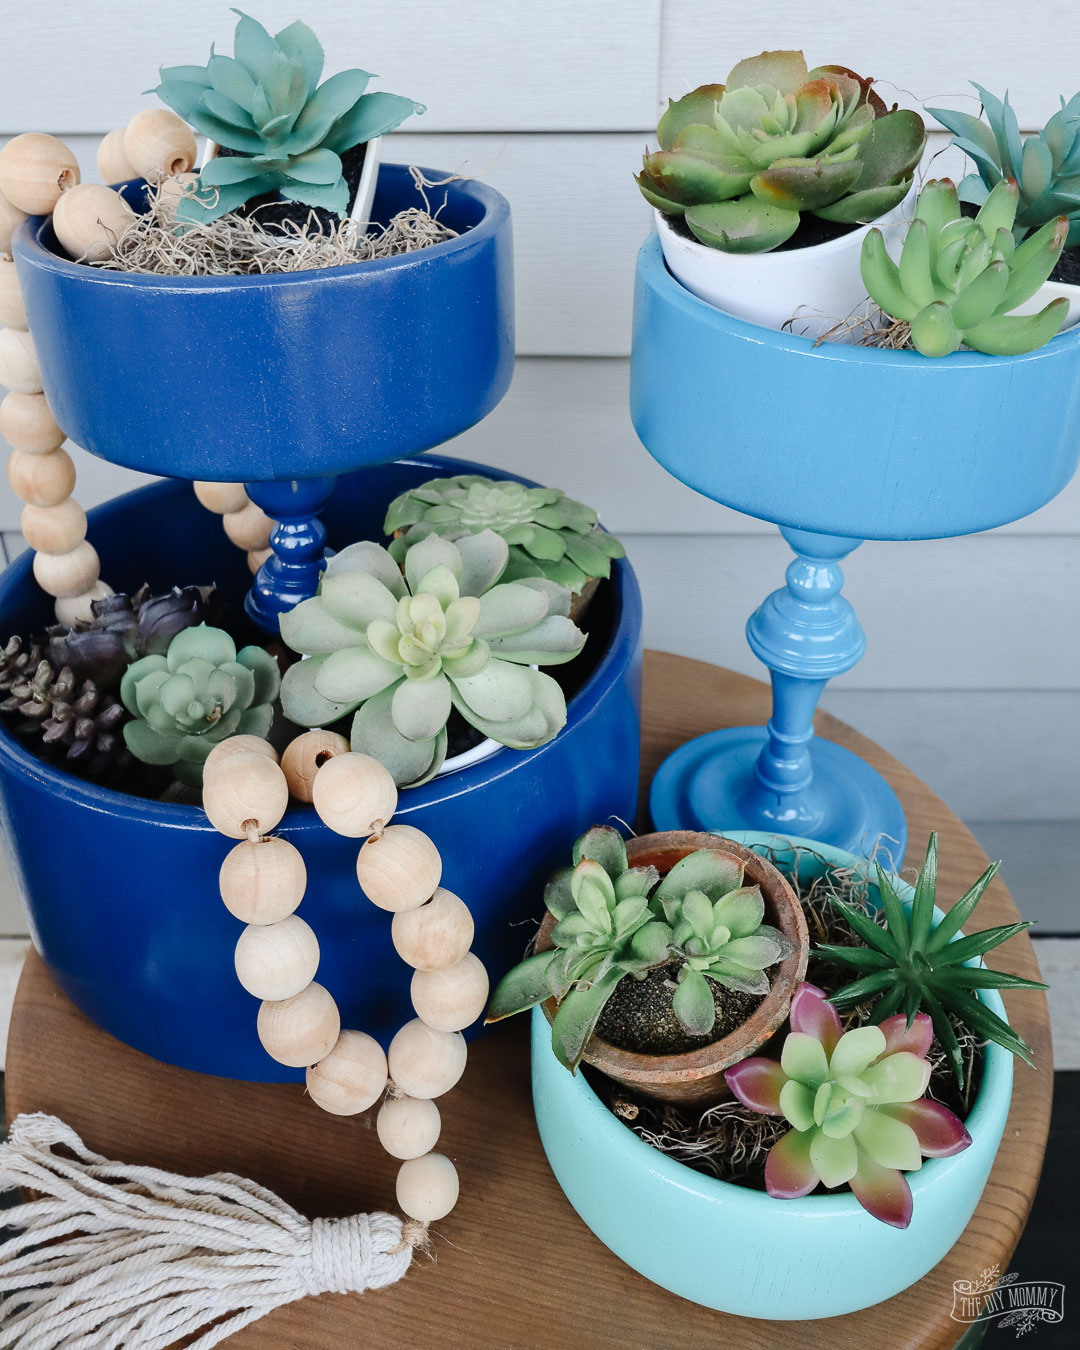 Learn how to make easy DIY tiered trays from thrifted wood bowls and candelsticks